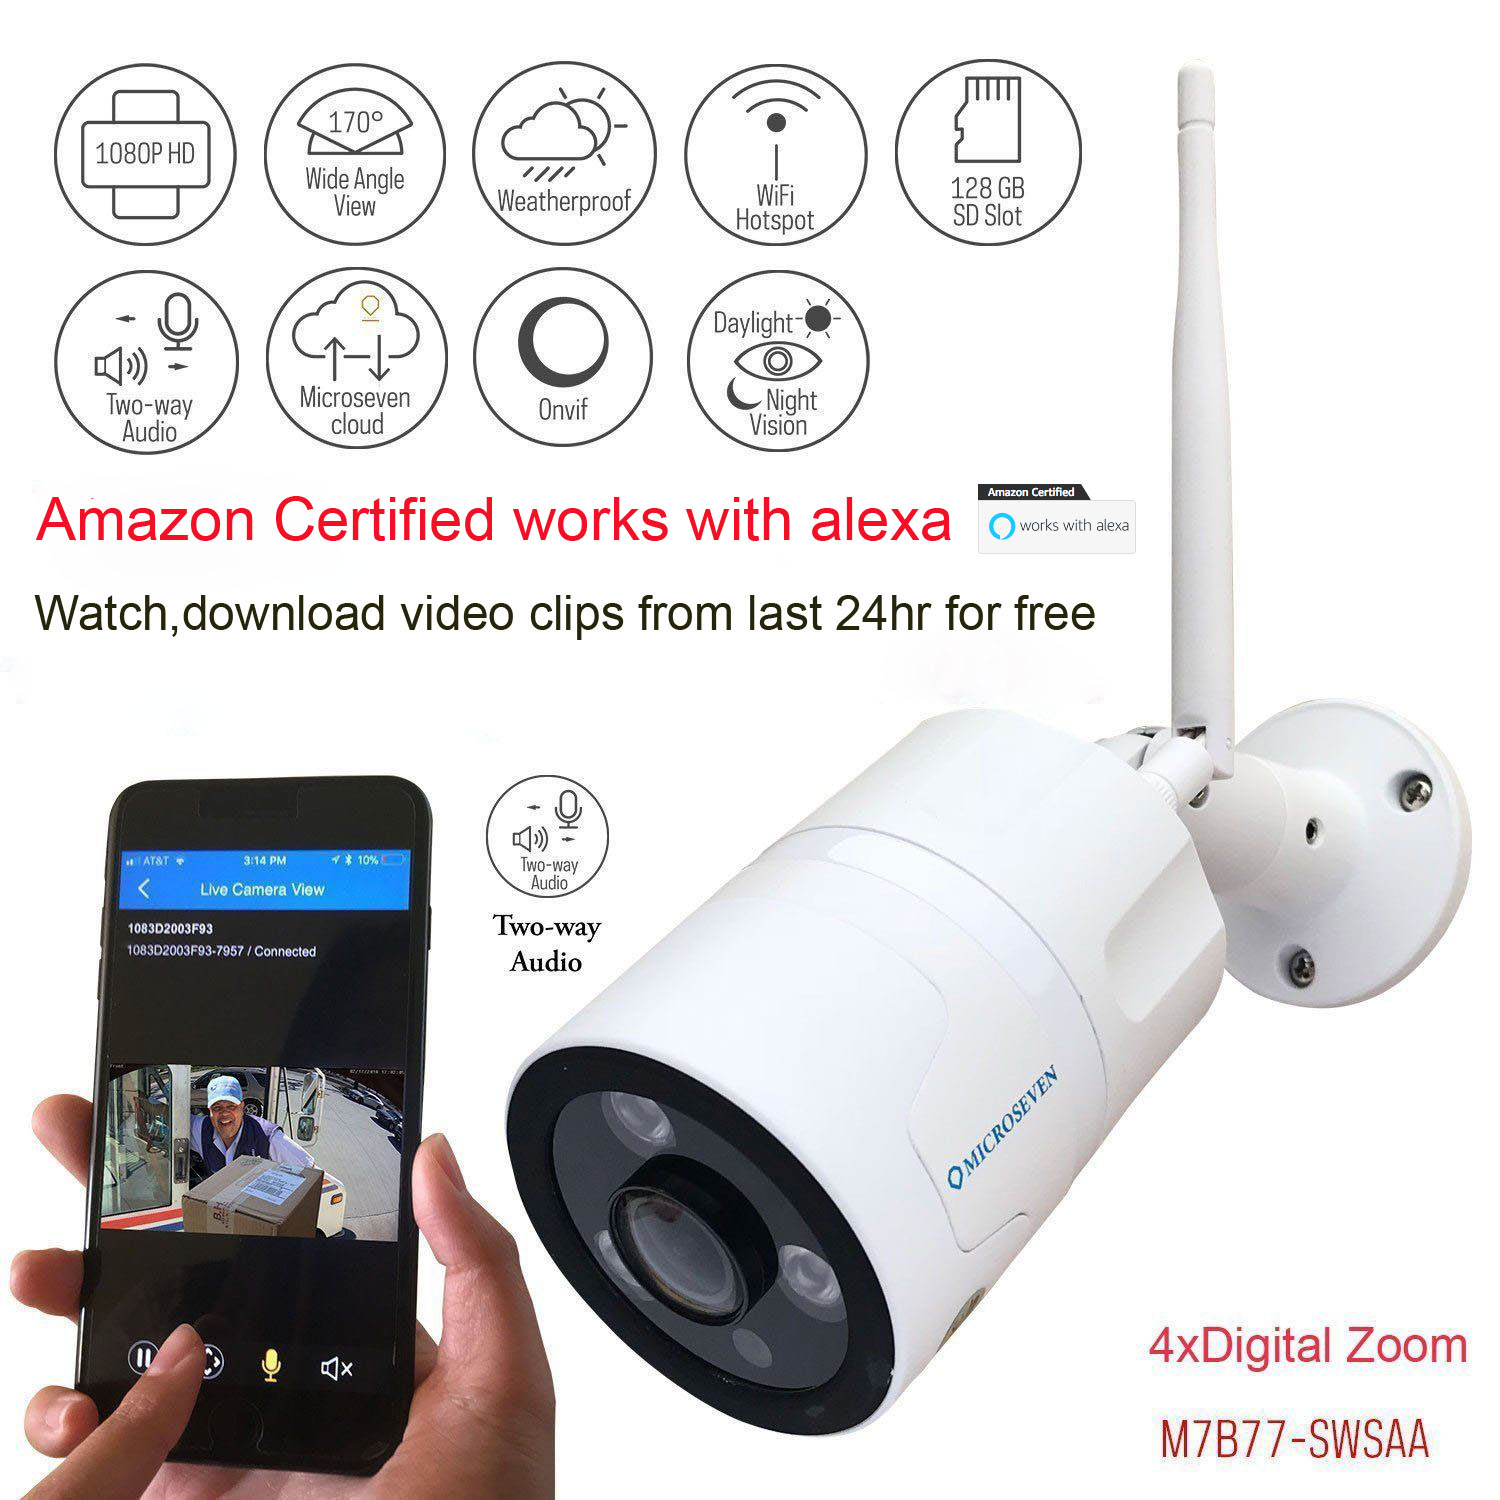 Microseven HD Works with Alexa,Amazon Certified, Free 24Hr Cloud , Two-Way Audio 1080P WiFi Wide Angle (170°) Outdoor IP Camera, SONY CMOS Built-in Microphone & Speaker +128GB SD Slot, Day & Night, ONVIF, Free Live Streaming microseven.tv